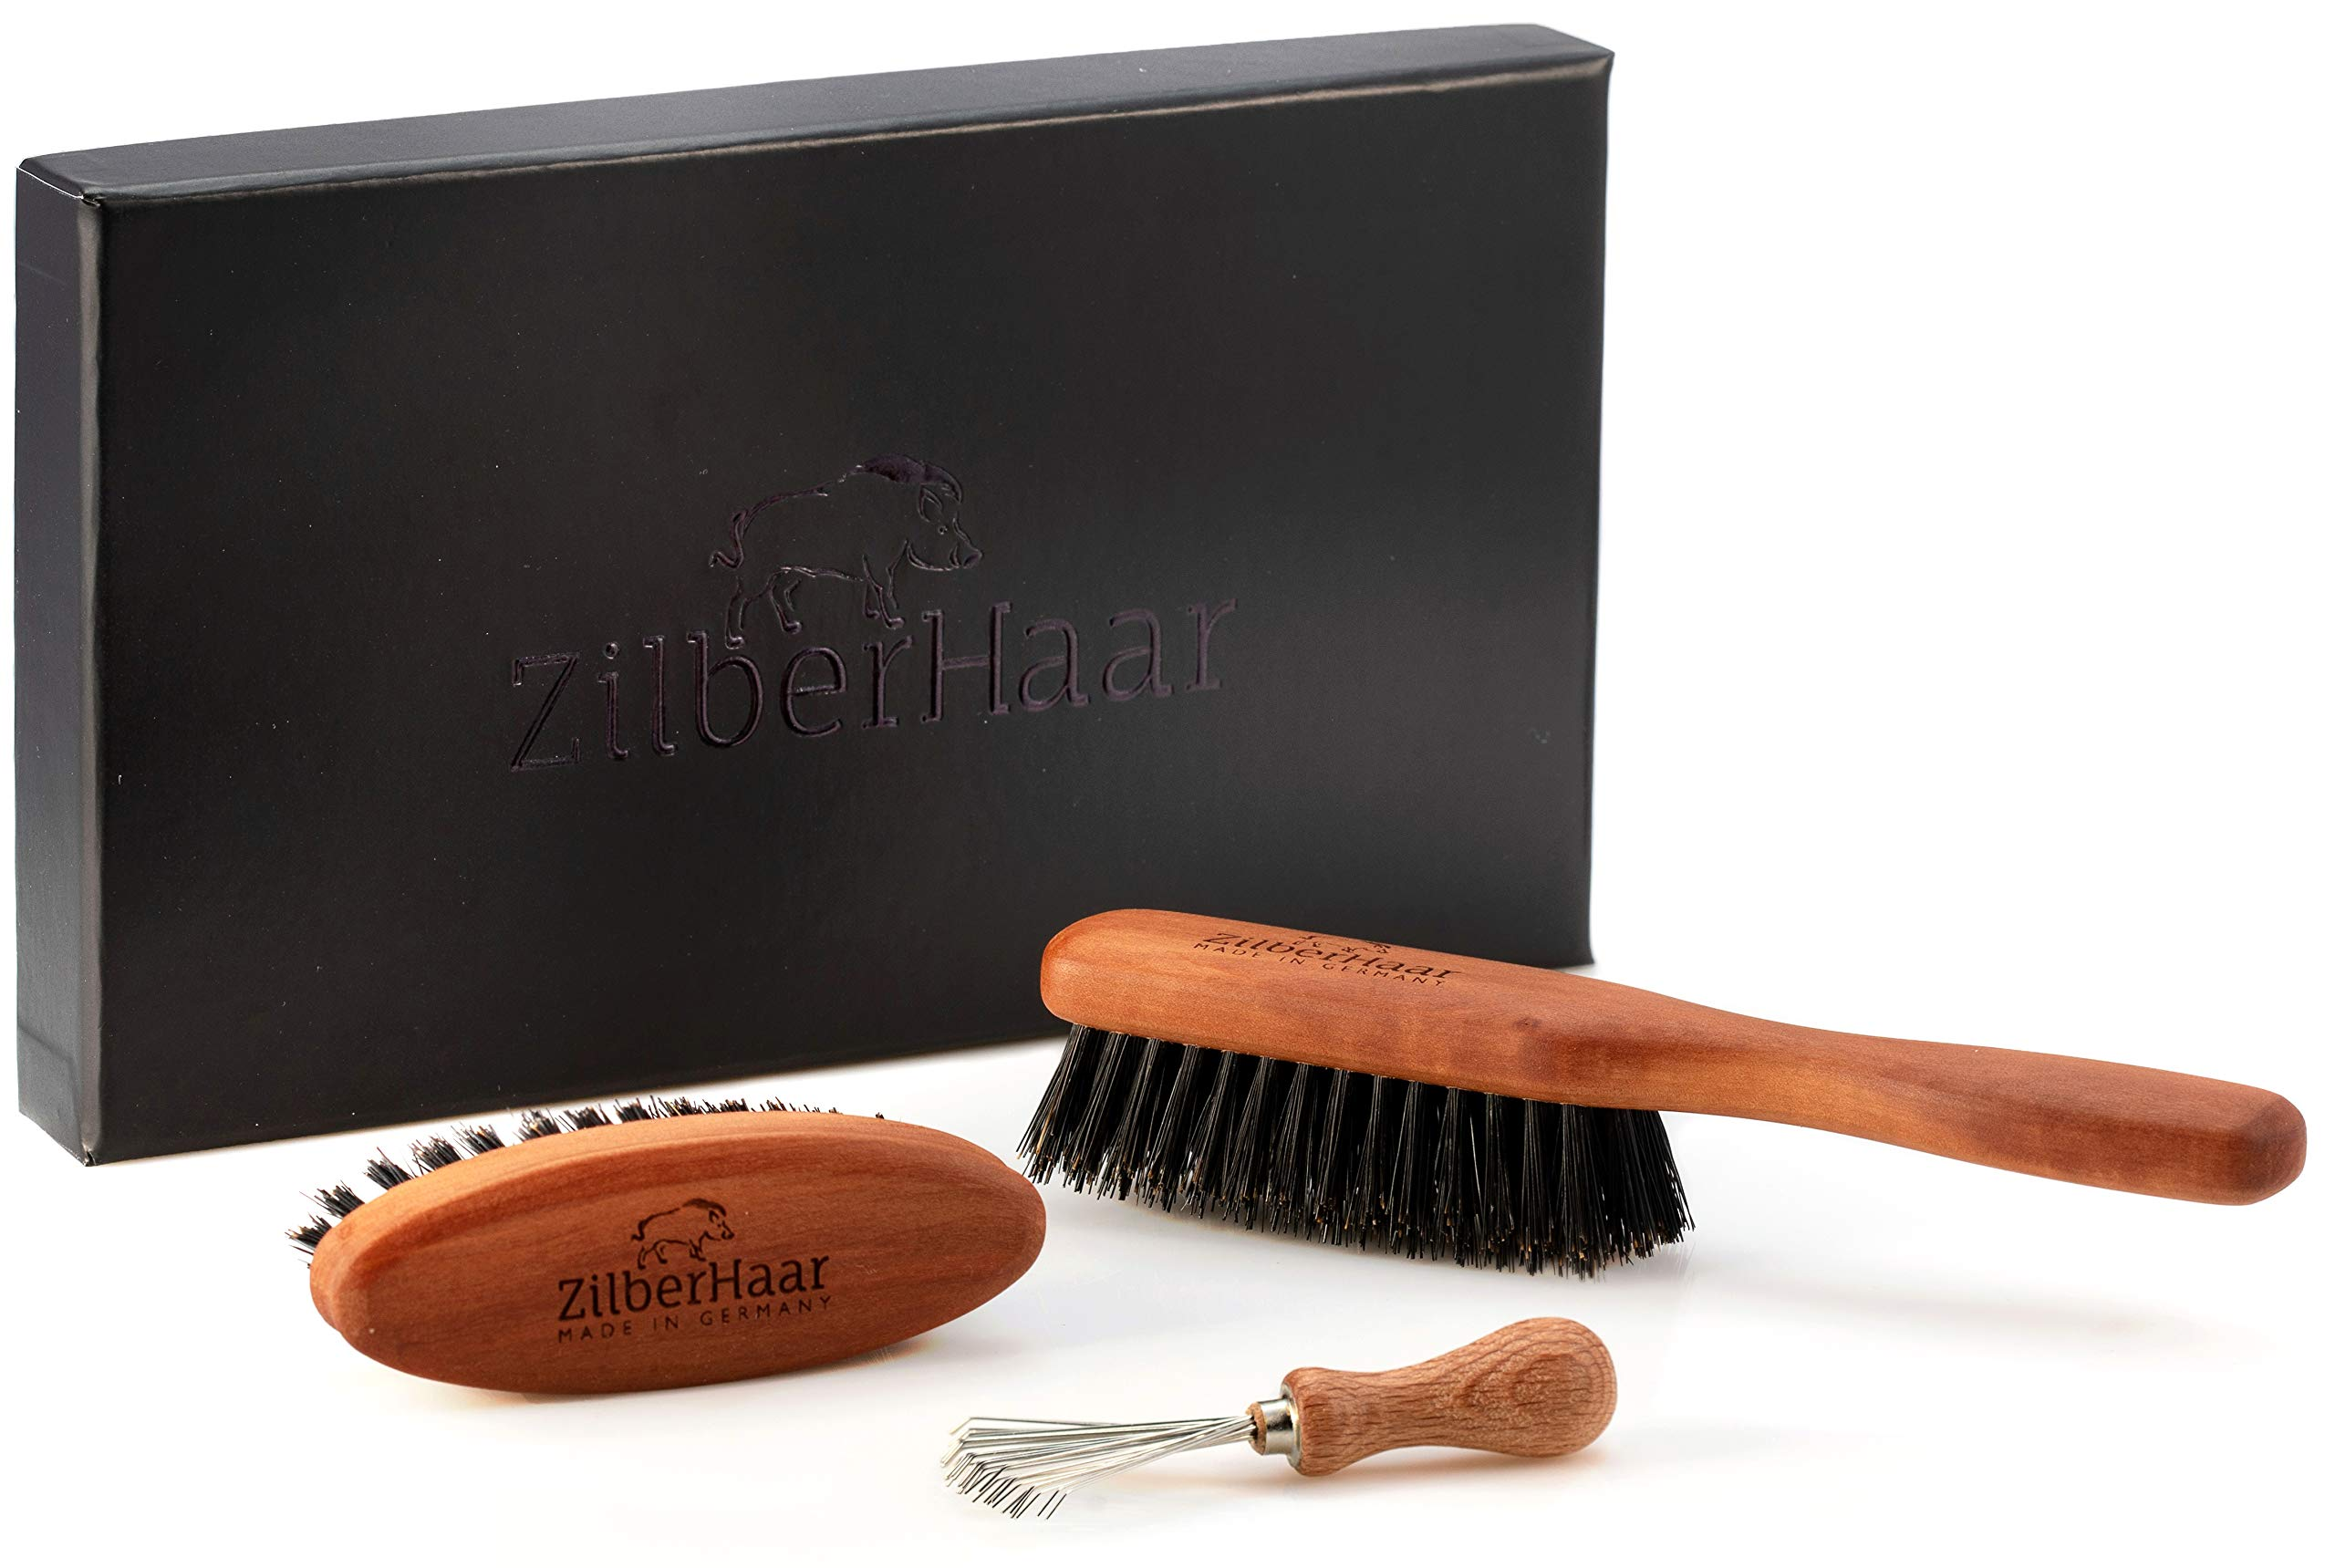 Zilberhaar Basic Beard Brush Kit (Stiff Version) - Ideal for Medium to Long, Thick Beards - Distributes Balm & Oil for Growth and Styling - Perfect Gift Set - Comes with Brush Cleaning Tool by ZilberHaar